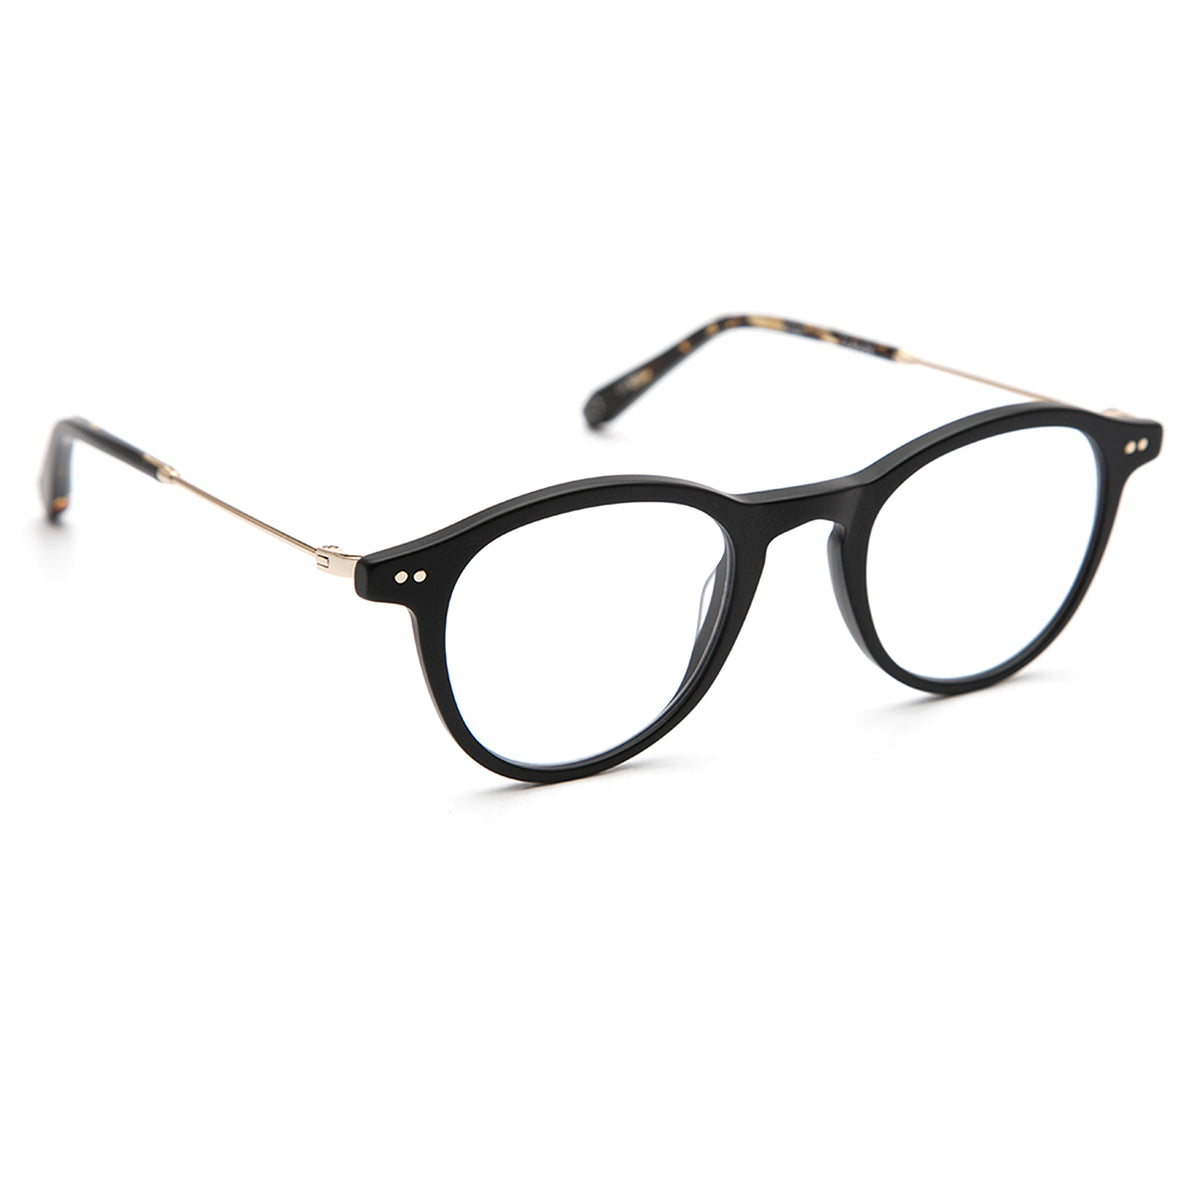 VALENCE OPTICAL | Matte Black-Optical